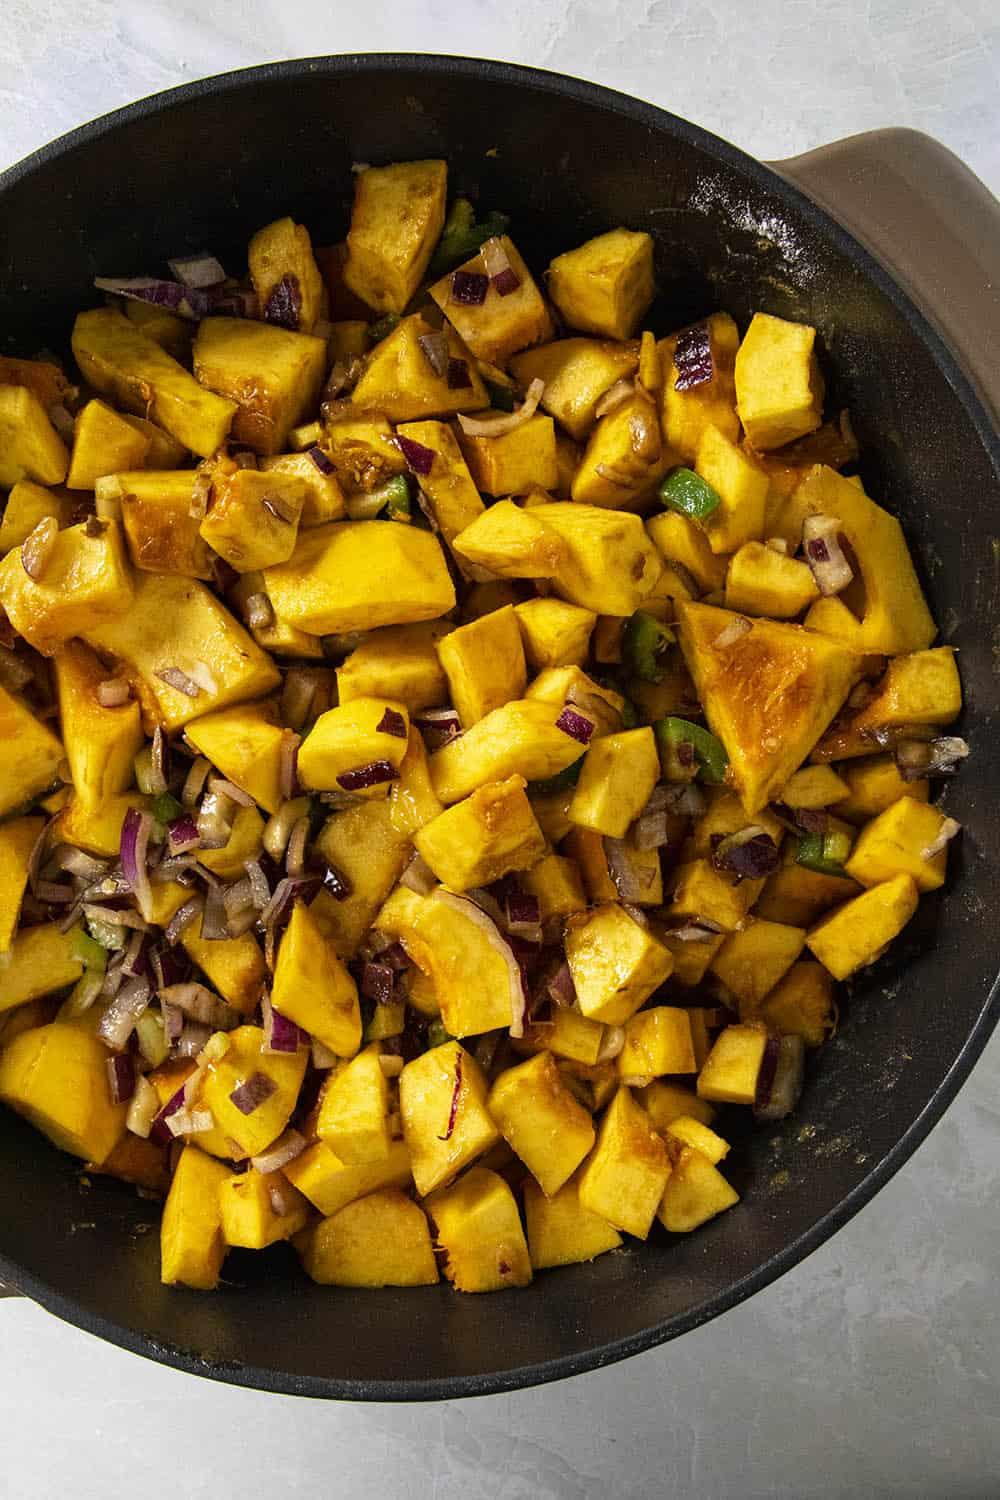 Pumpkin soup in a pot, before cooking